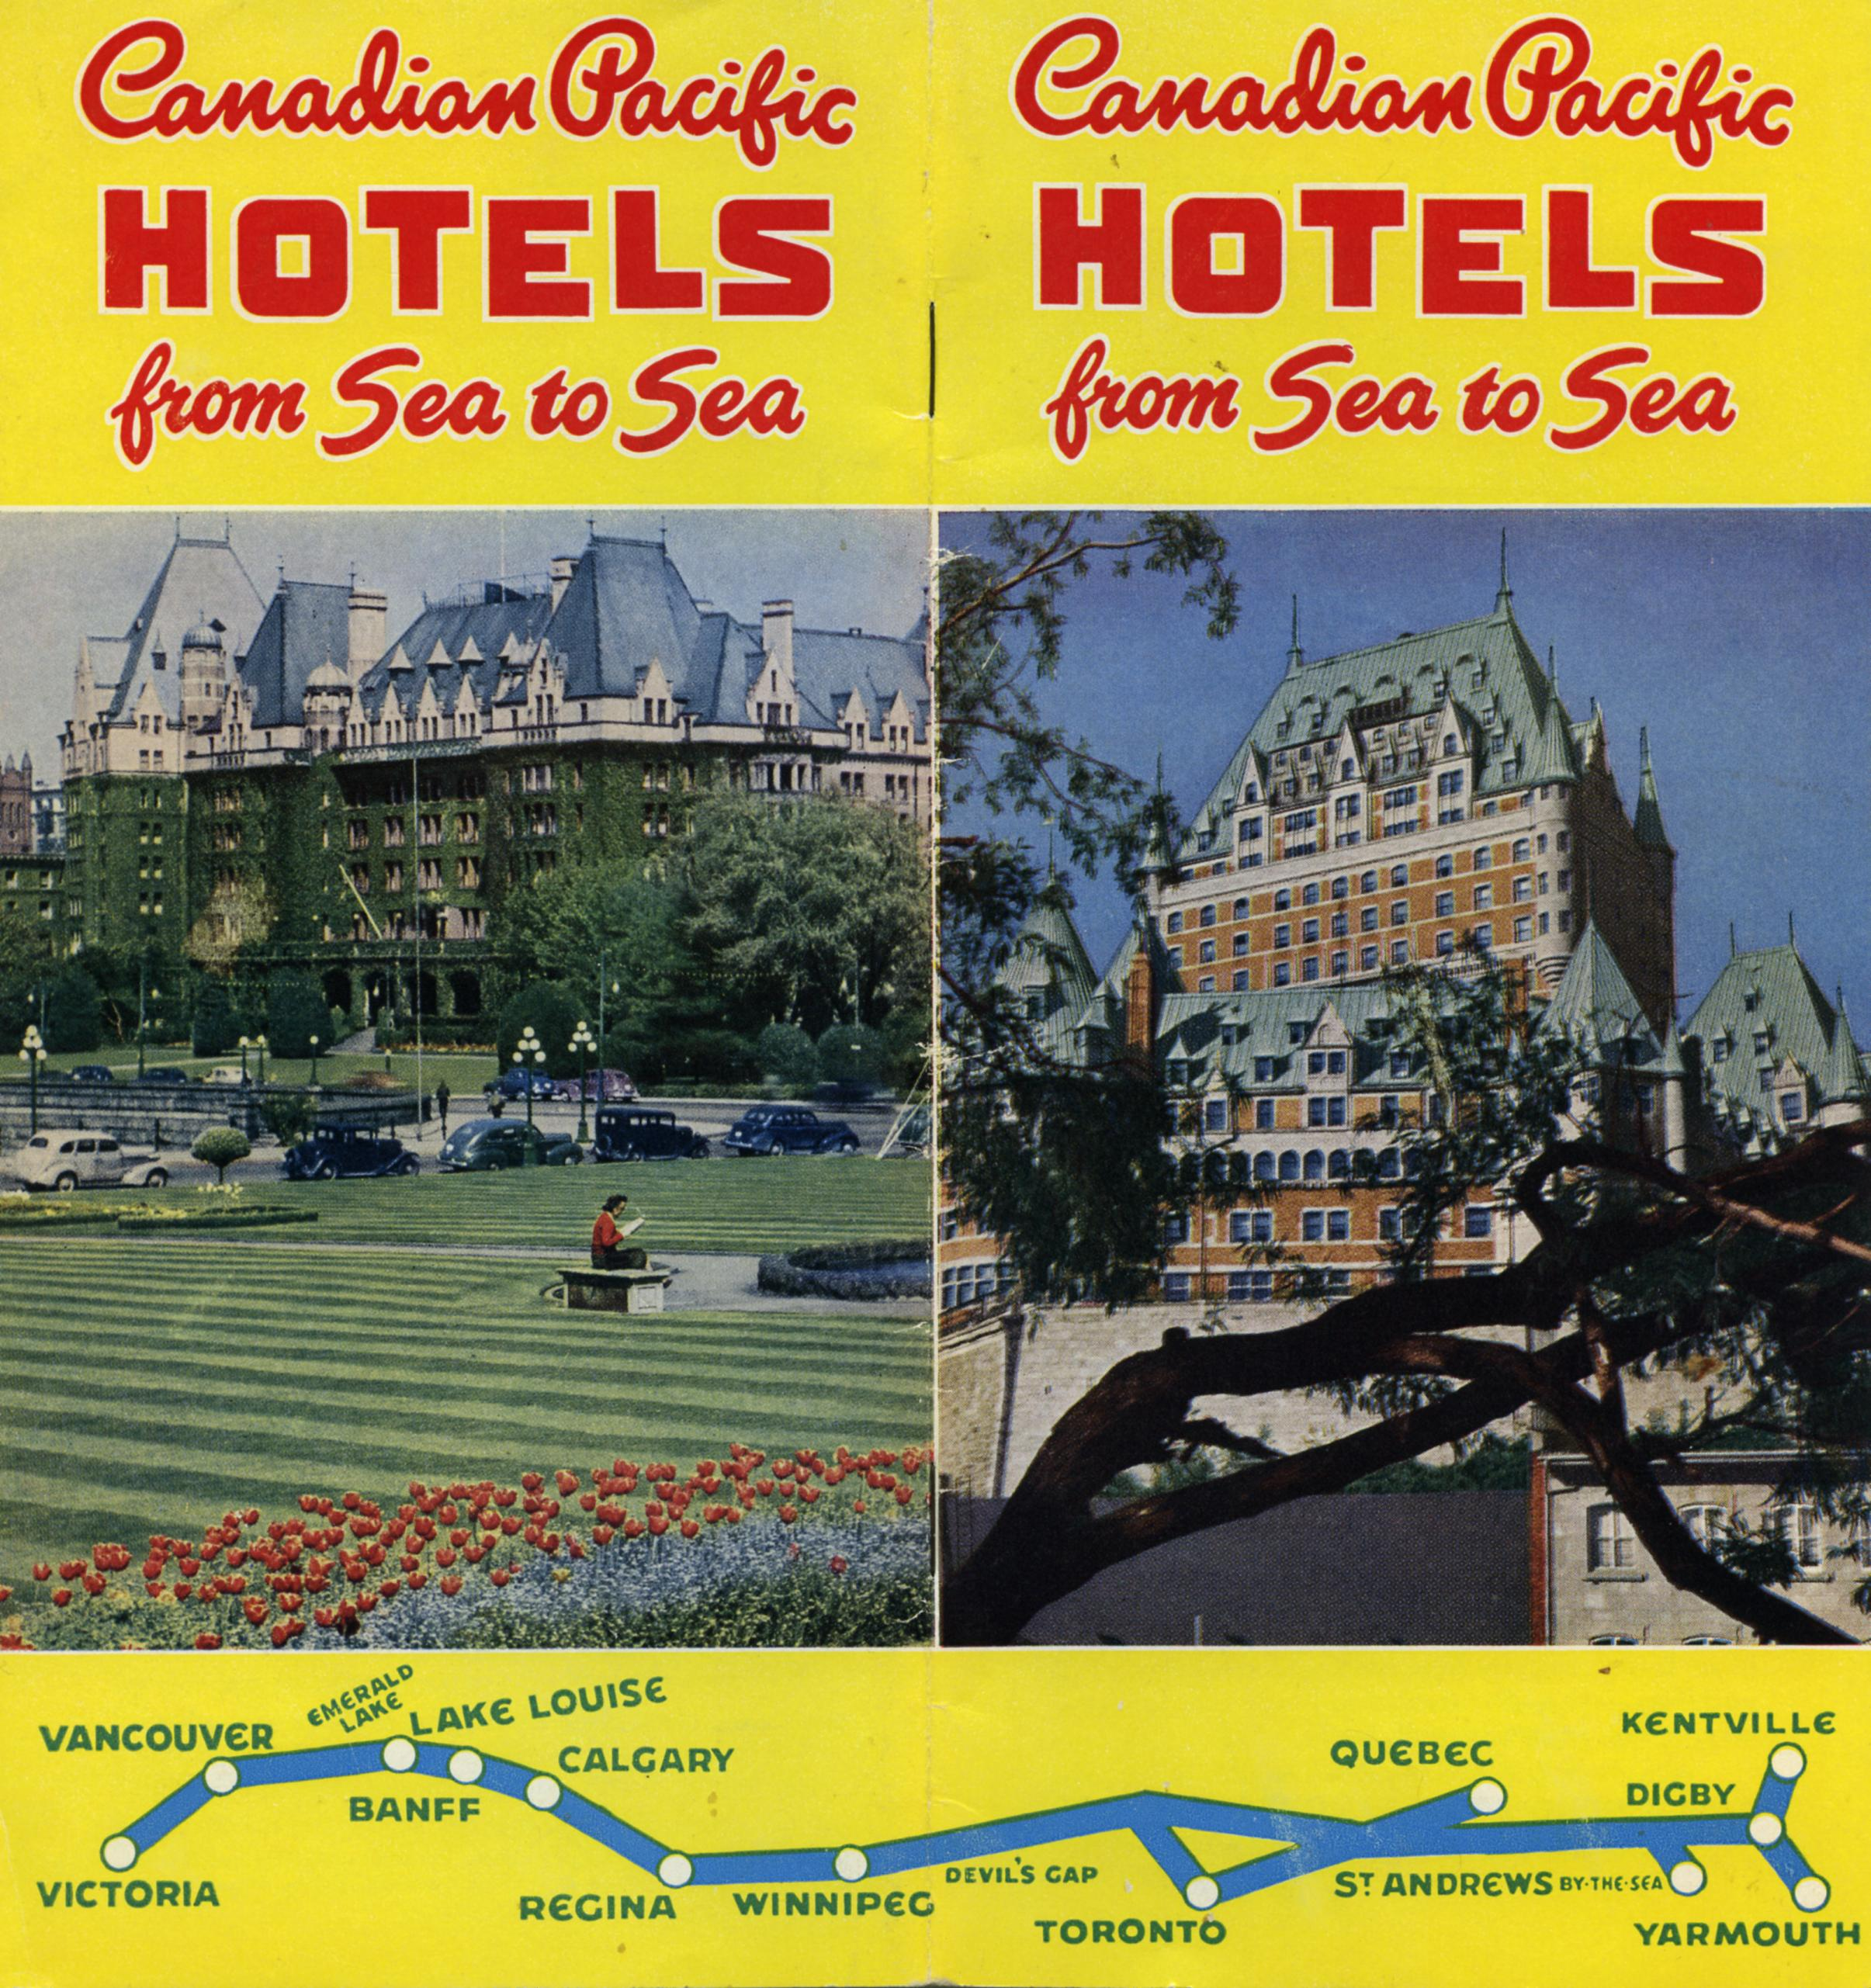 Canadian Pacific Hotels brochure - 1950